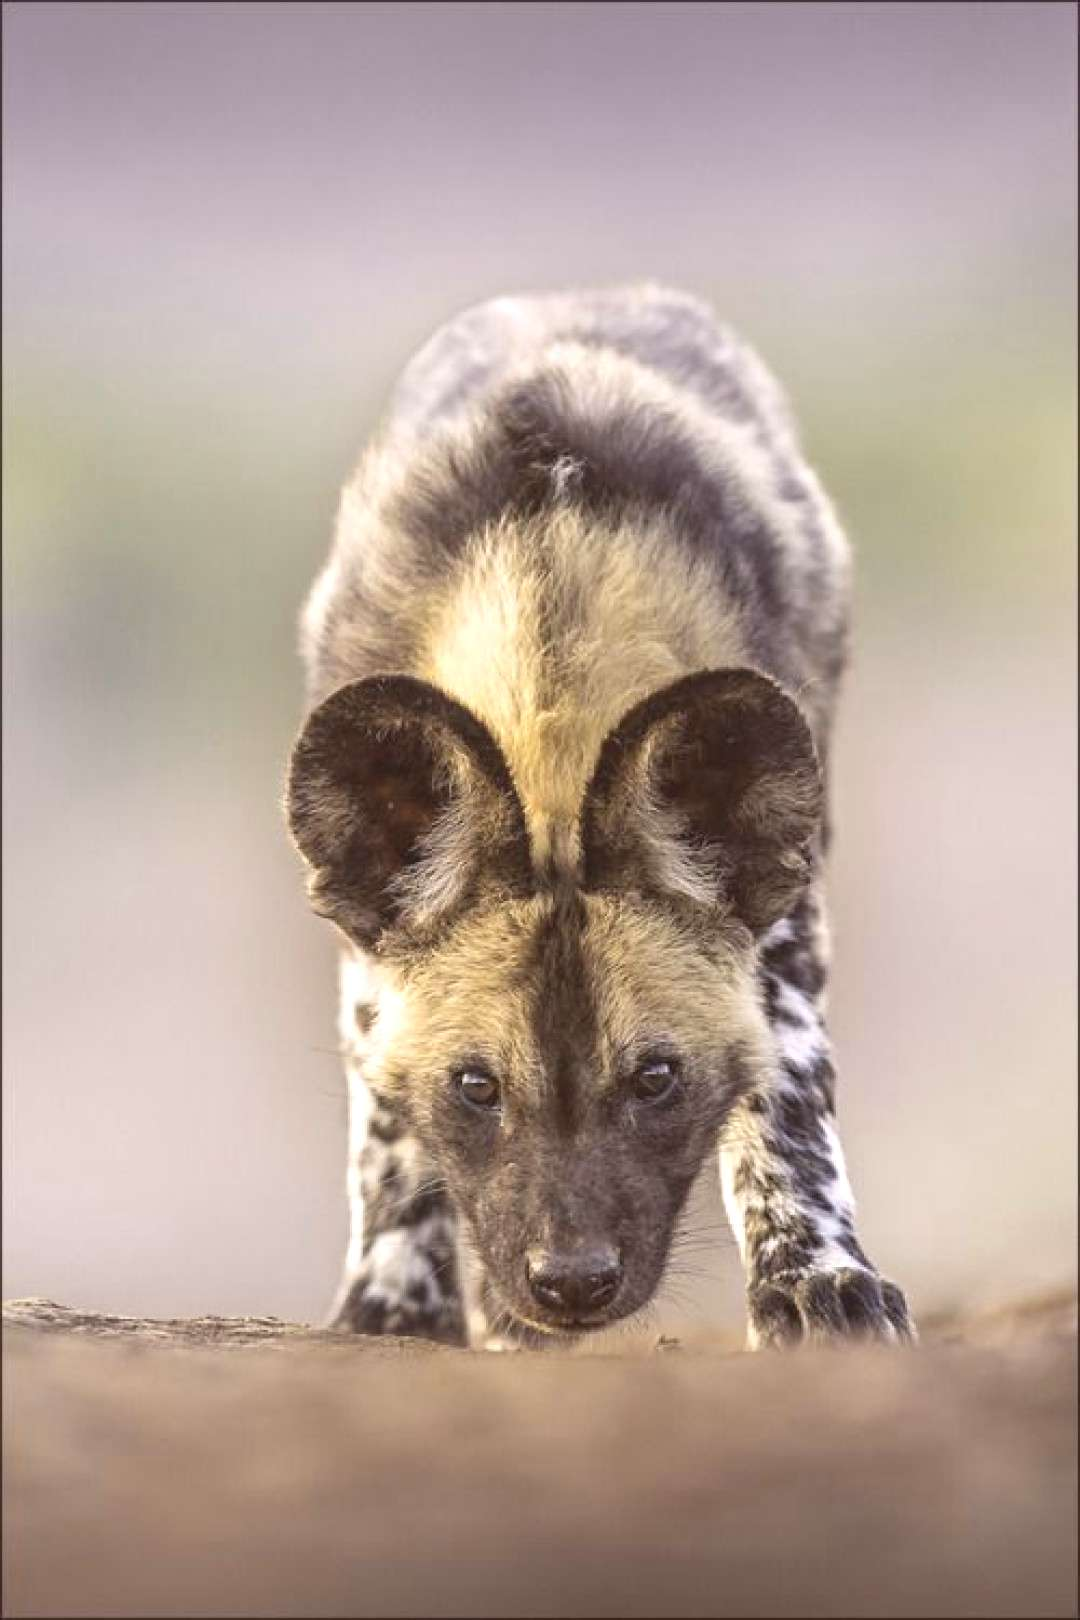 Georg Scharf (forum for nature photographers) - Lycaon pictus (African wild dog – Canidae / dogs